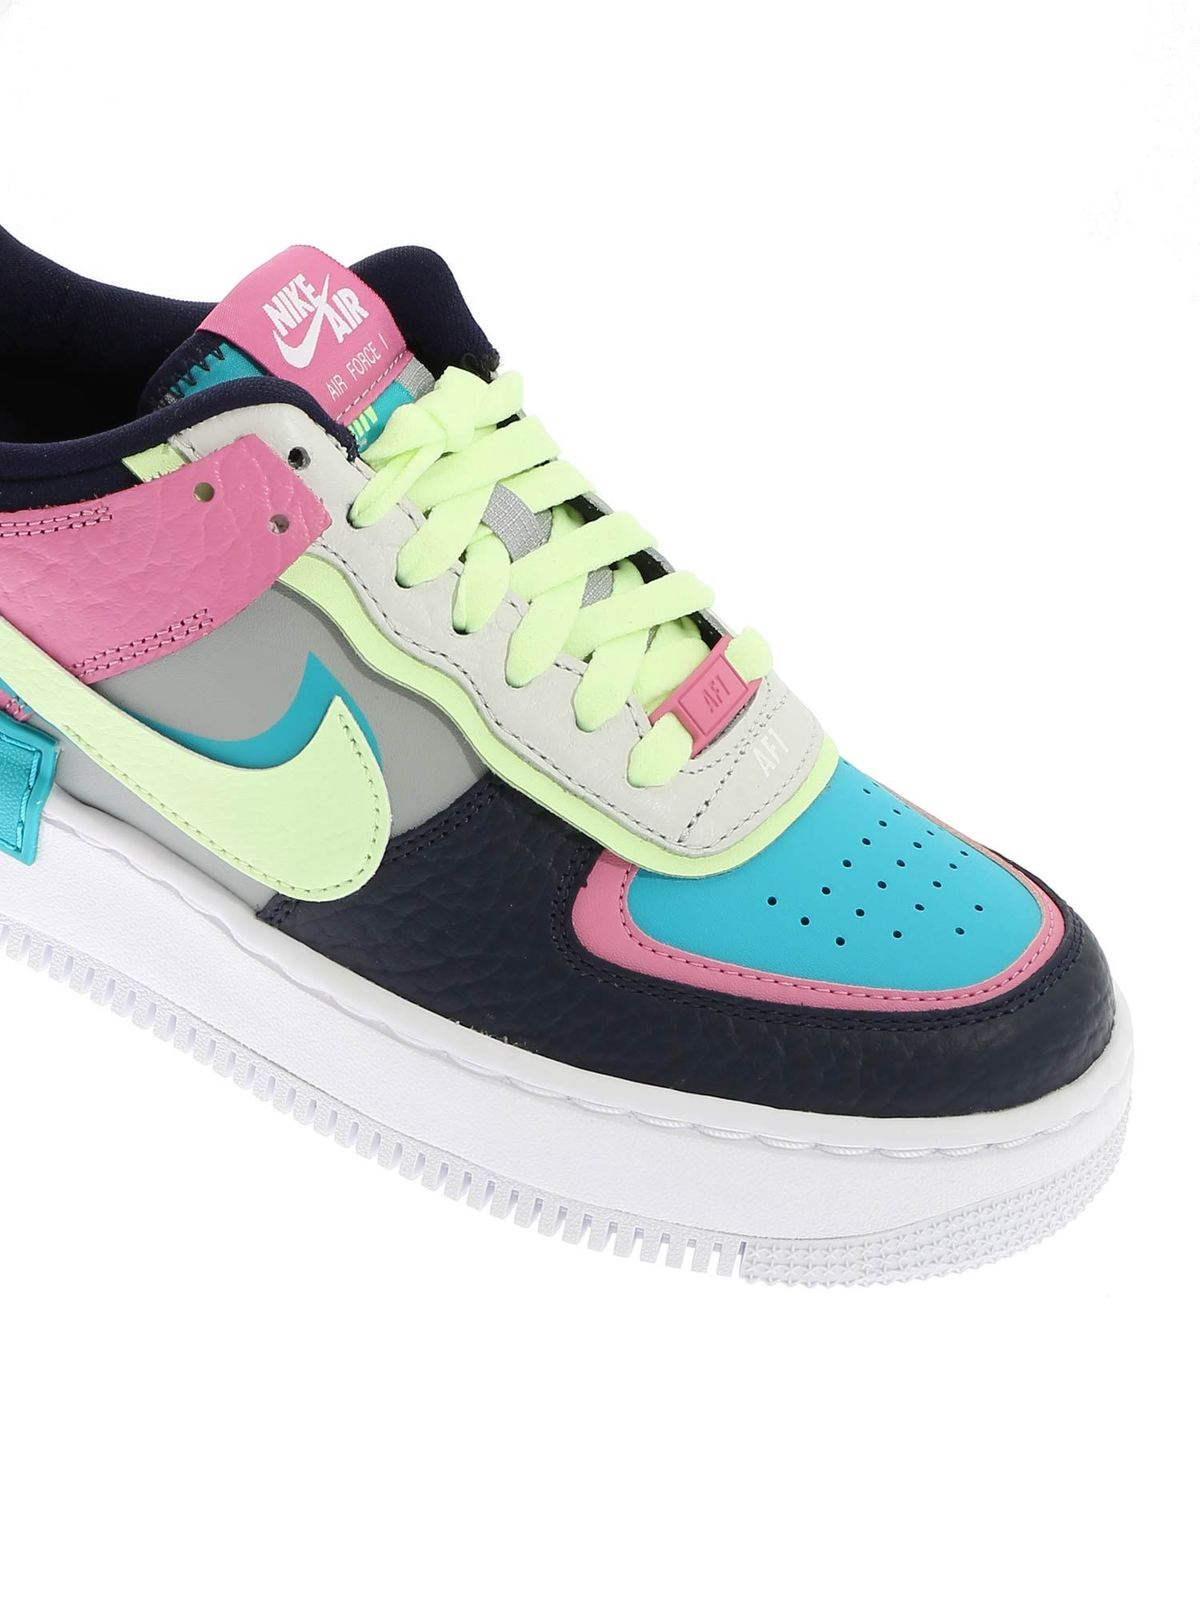 Nike Air Force 1 Shadow Se Sneakers In Multicolor Trainers Ck3172001 The nike air force 1 shadow delivers versatility in its stylishly distinctive design that allows you to rock this pair on various occasions with a wide variety of outfit among these renditions of the air force 1 is the nike air force 1 shadow which was introduced in 2019. nike